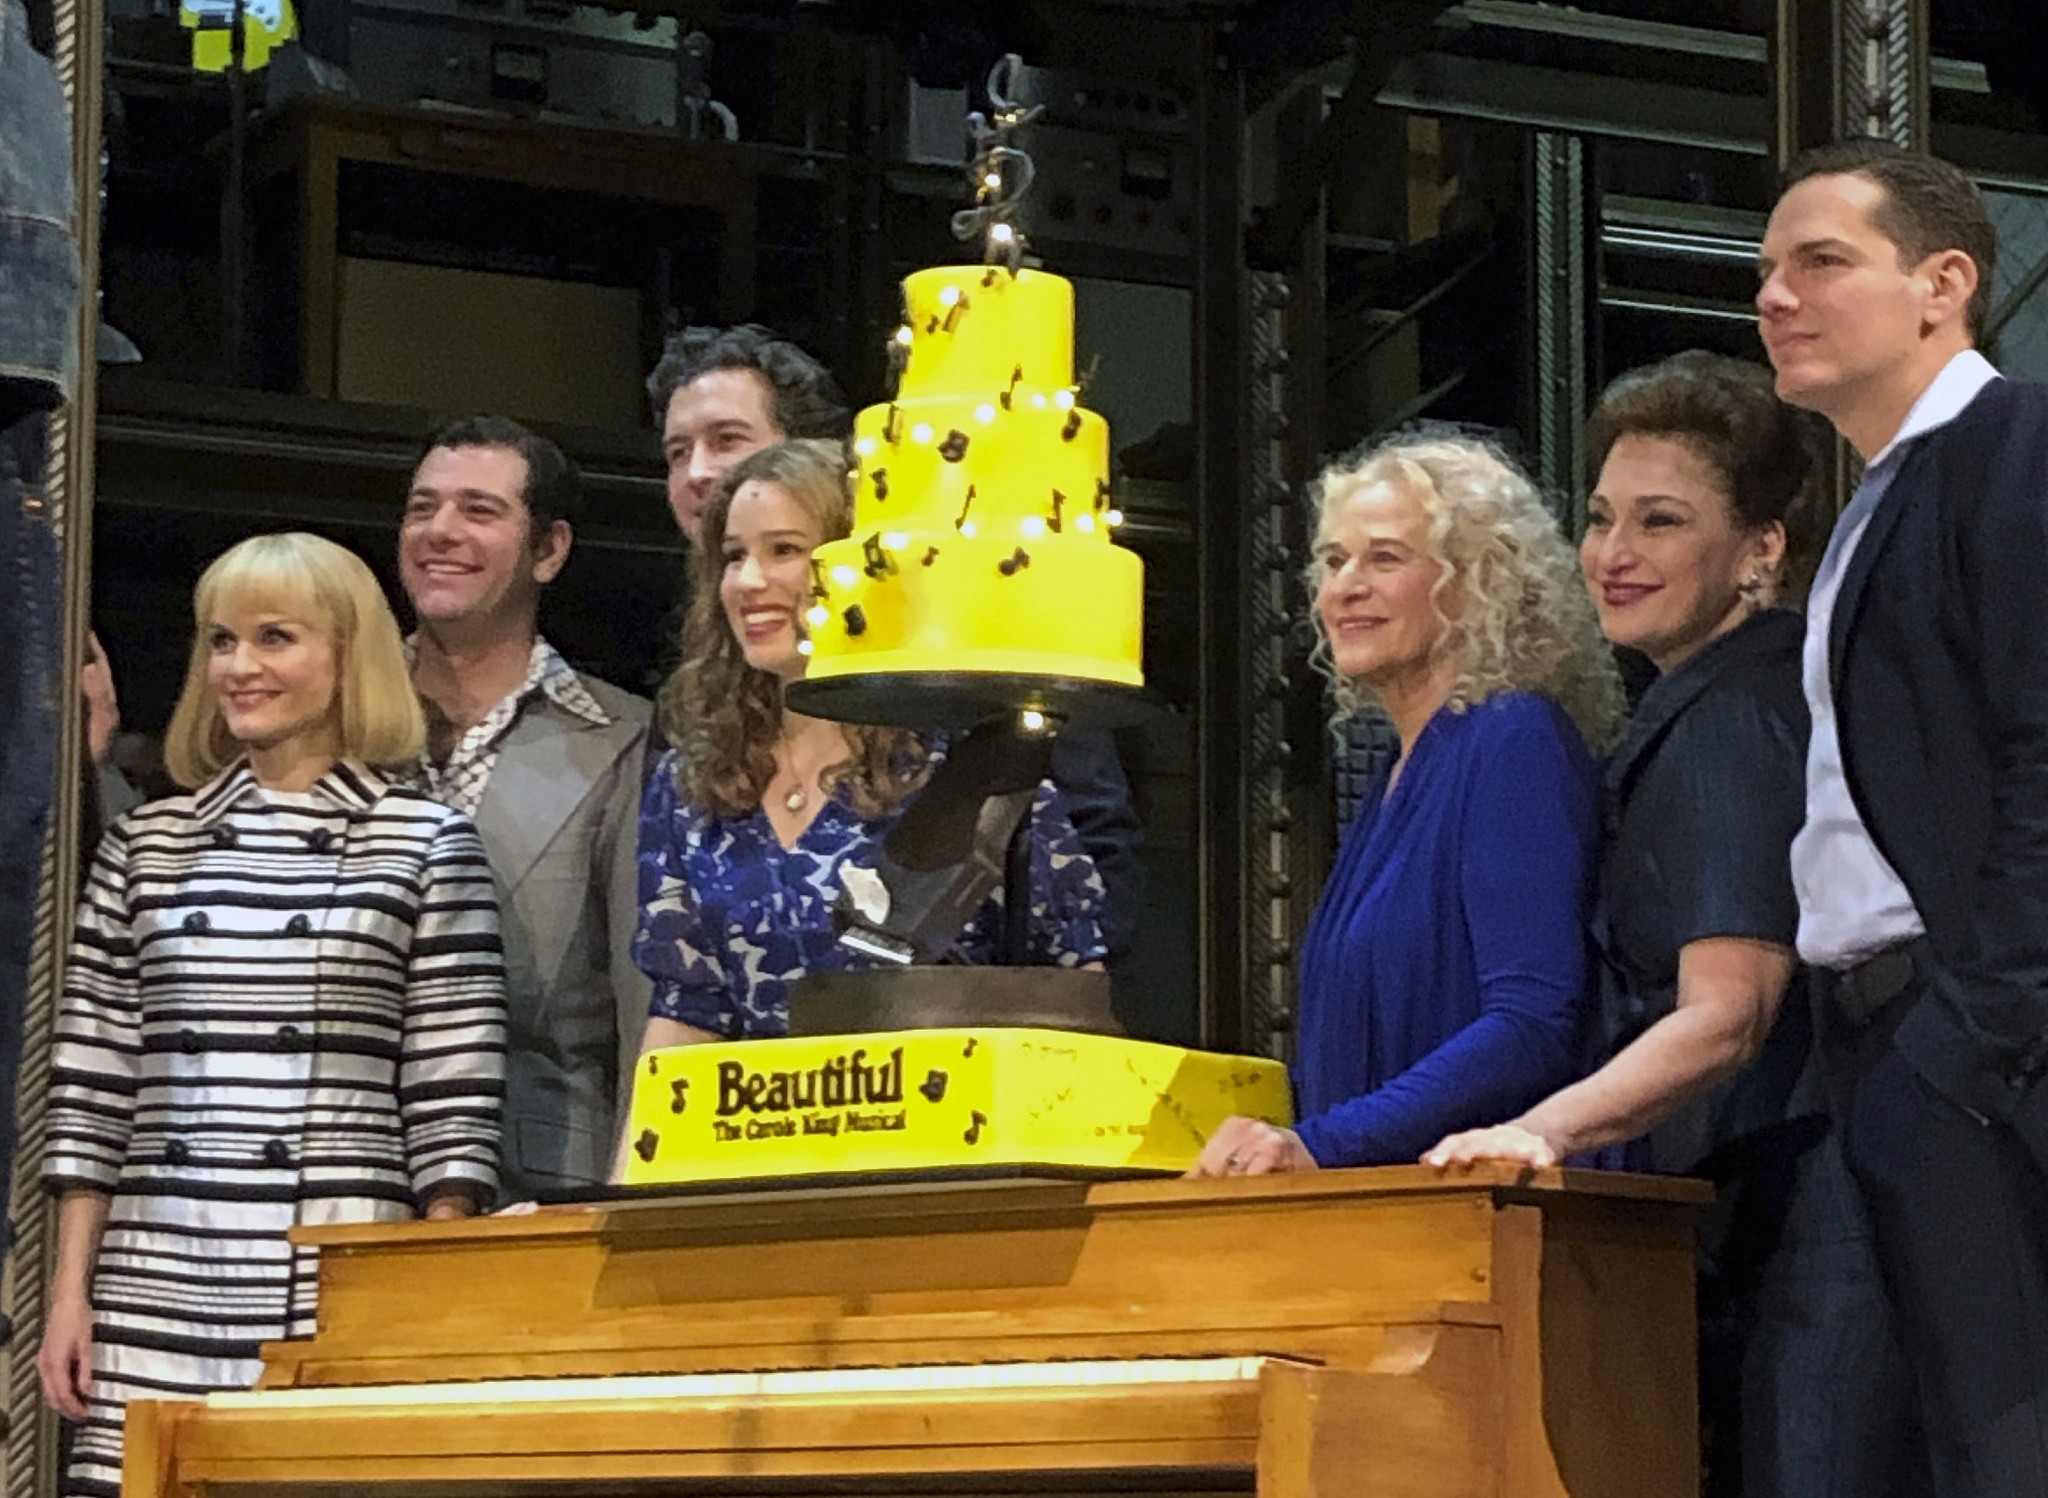 Carole King shows up as herself in Broadway bio | The Times